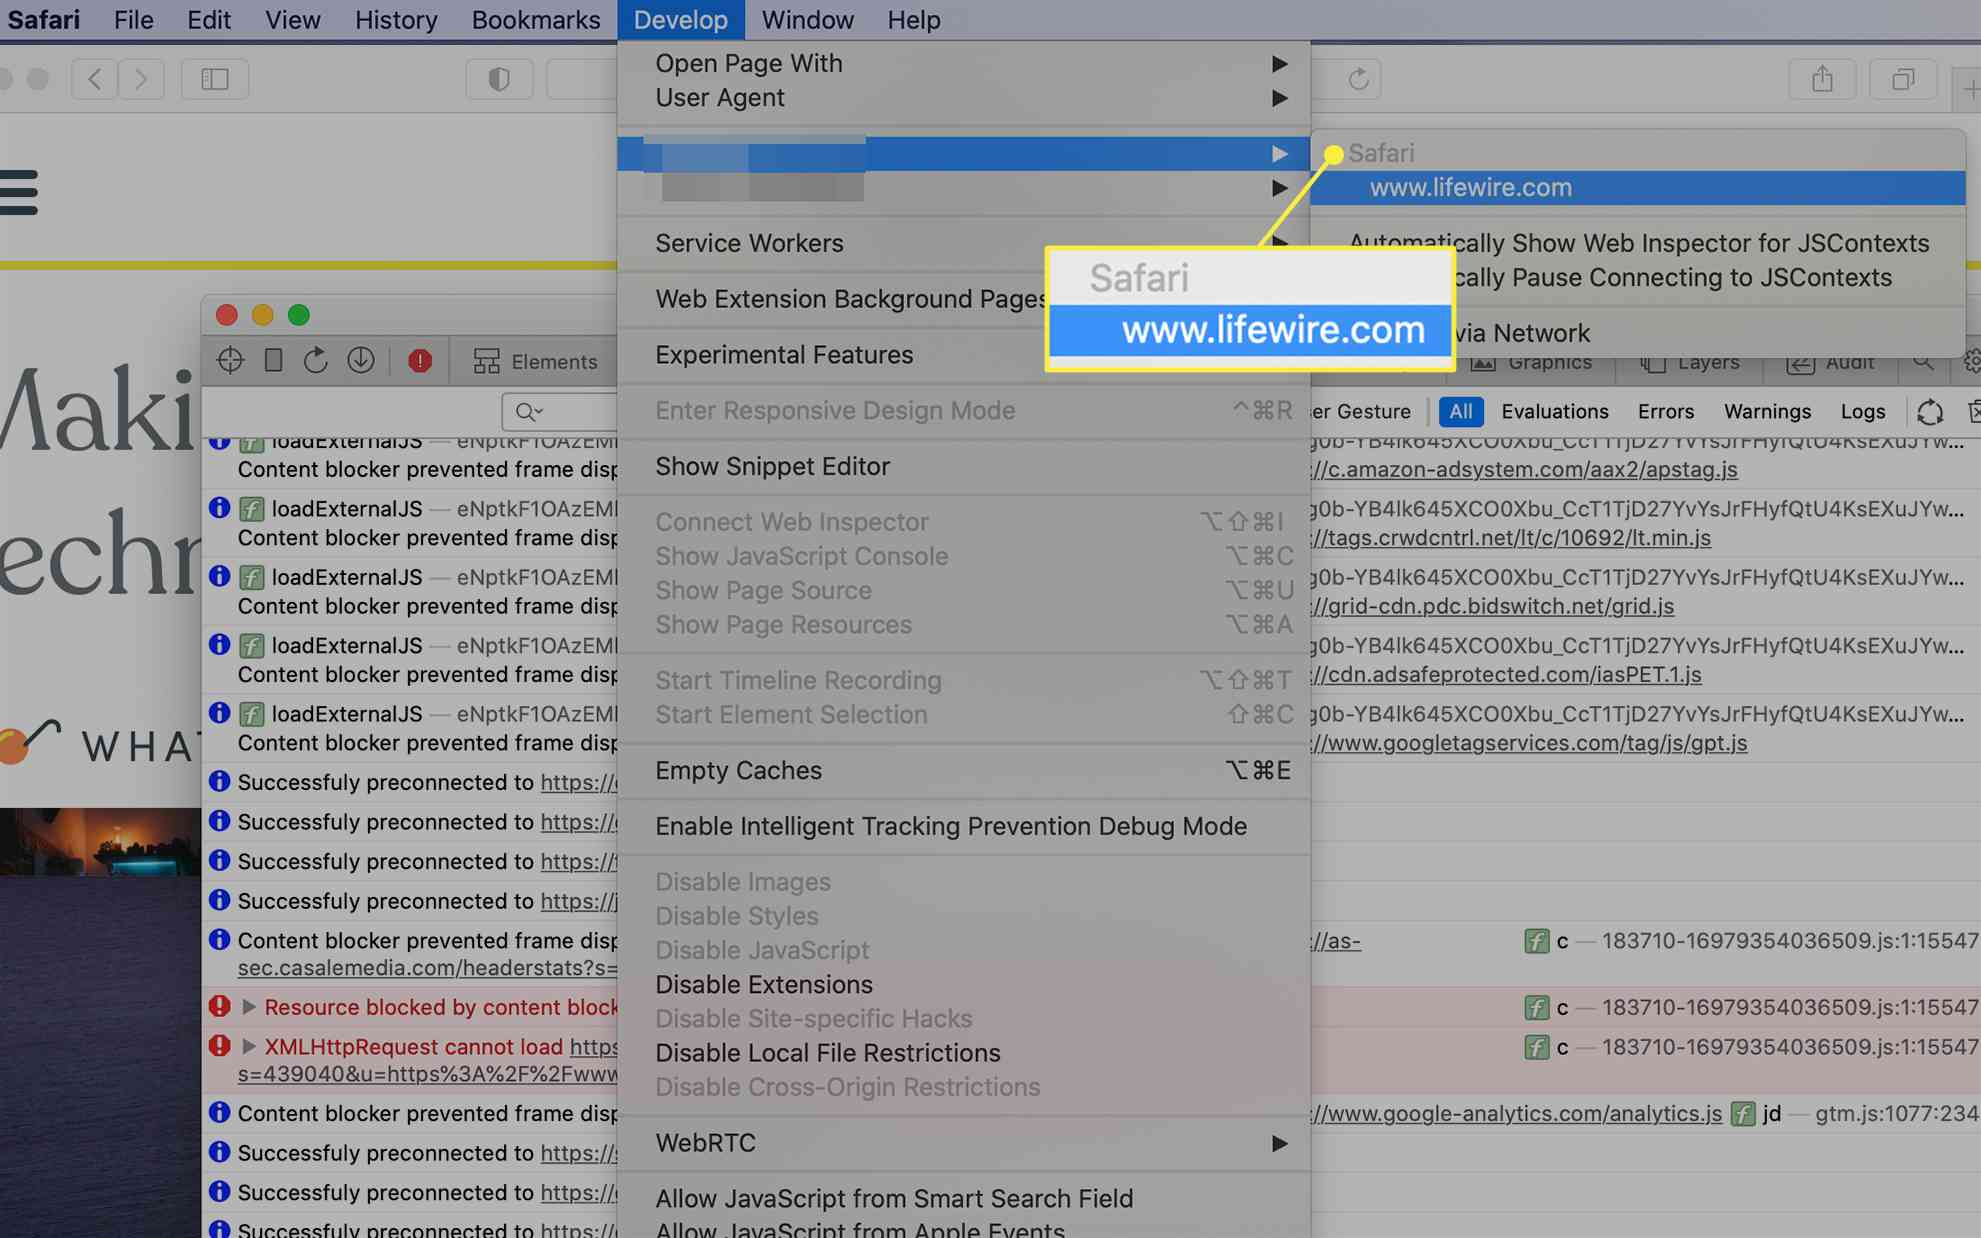 Safari mobile Web Inspector activated from the Develop menu on macOS